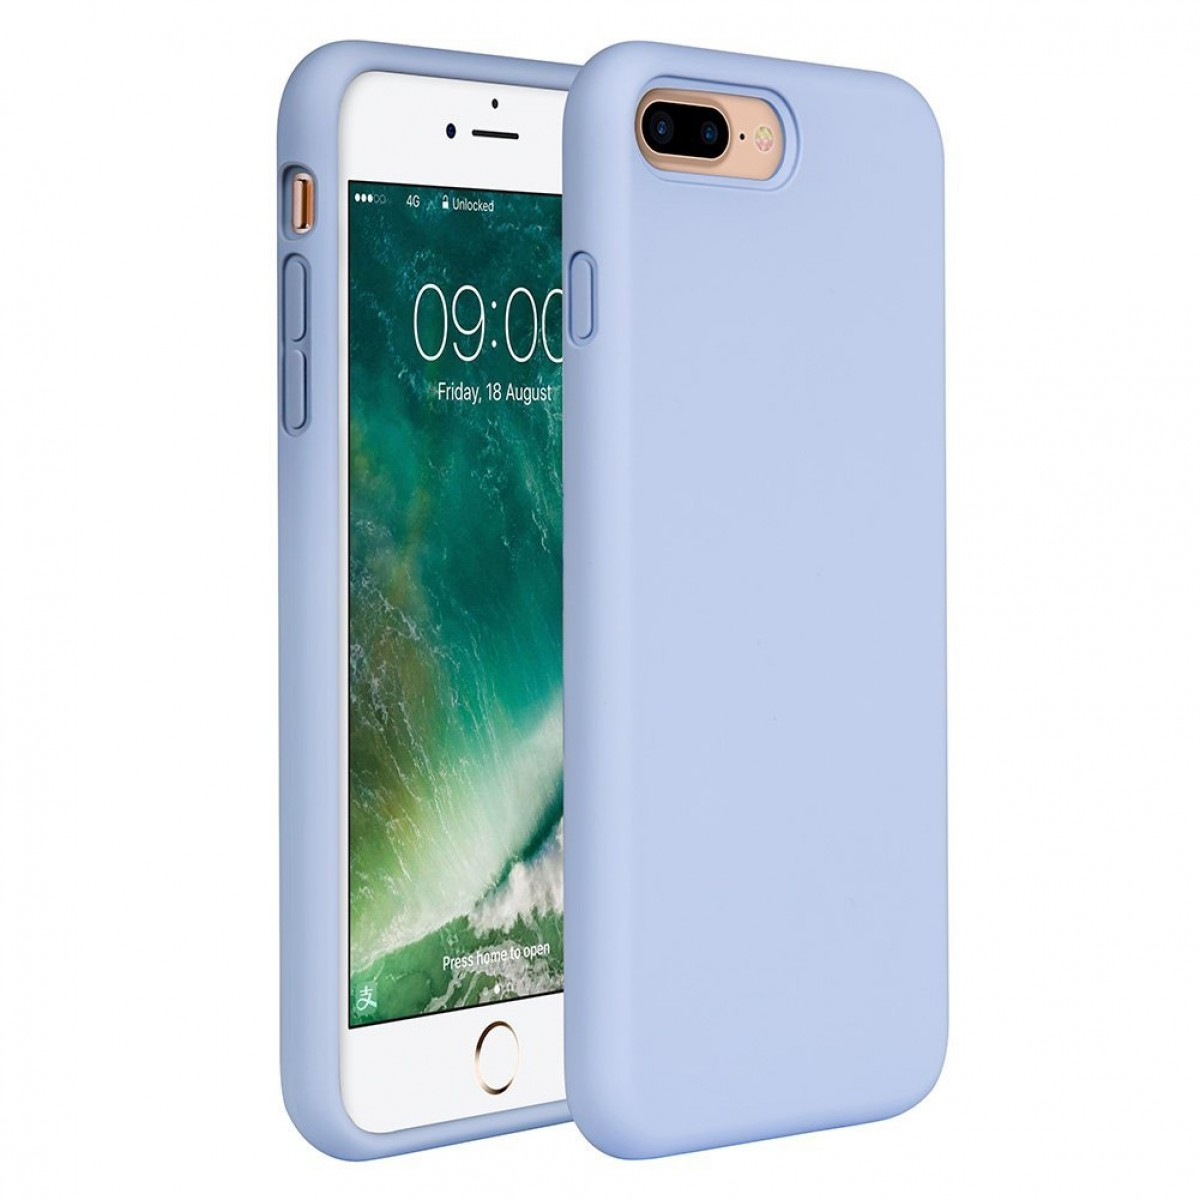 newest bb9cc 1c383 iPhone 8 Plus Silicone Case, iPhone 7 Plus Silicone Case Miracase Silicone  Gel Rubber Full Body Protection Shockproof Cover Case Drop Protection for  ...